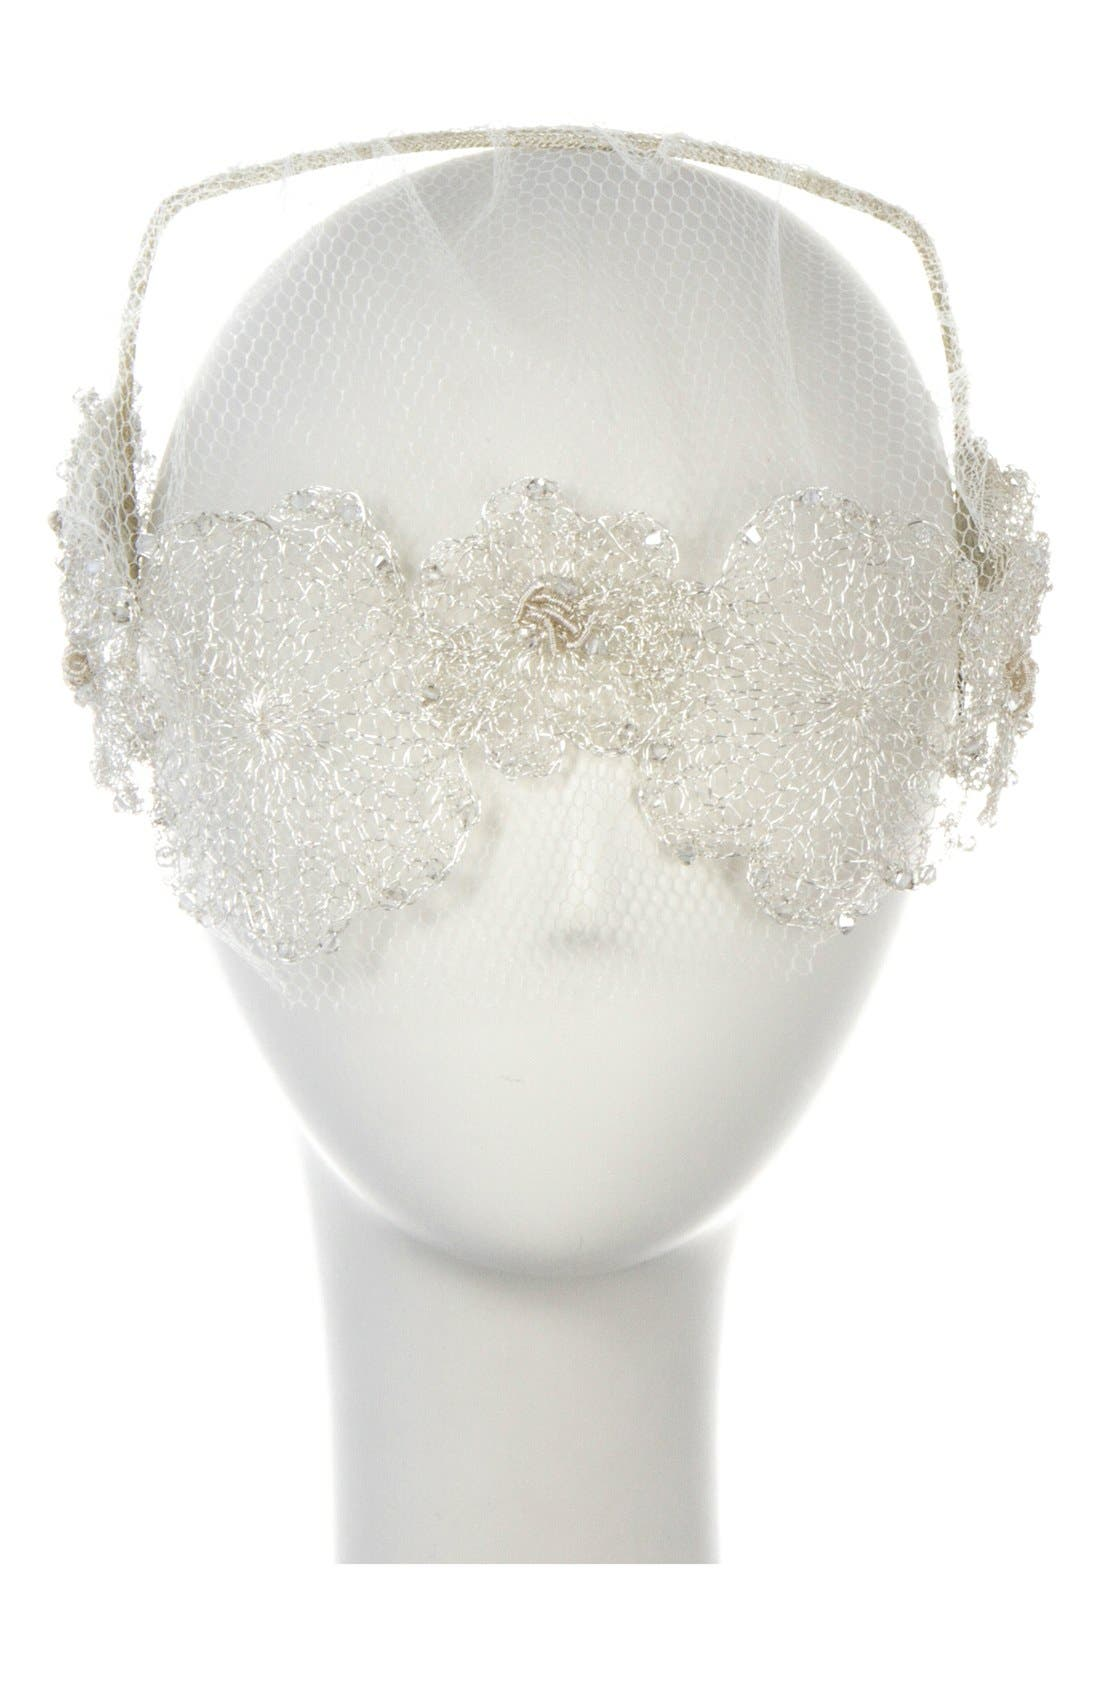 Main Image - Colette Malouf Headband with Floral Tulle Veil